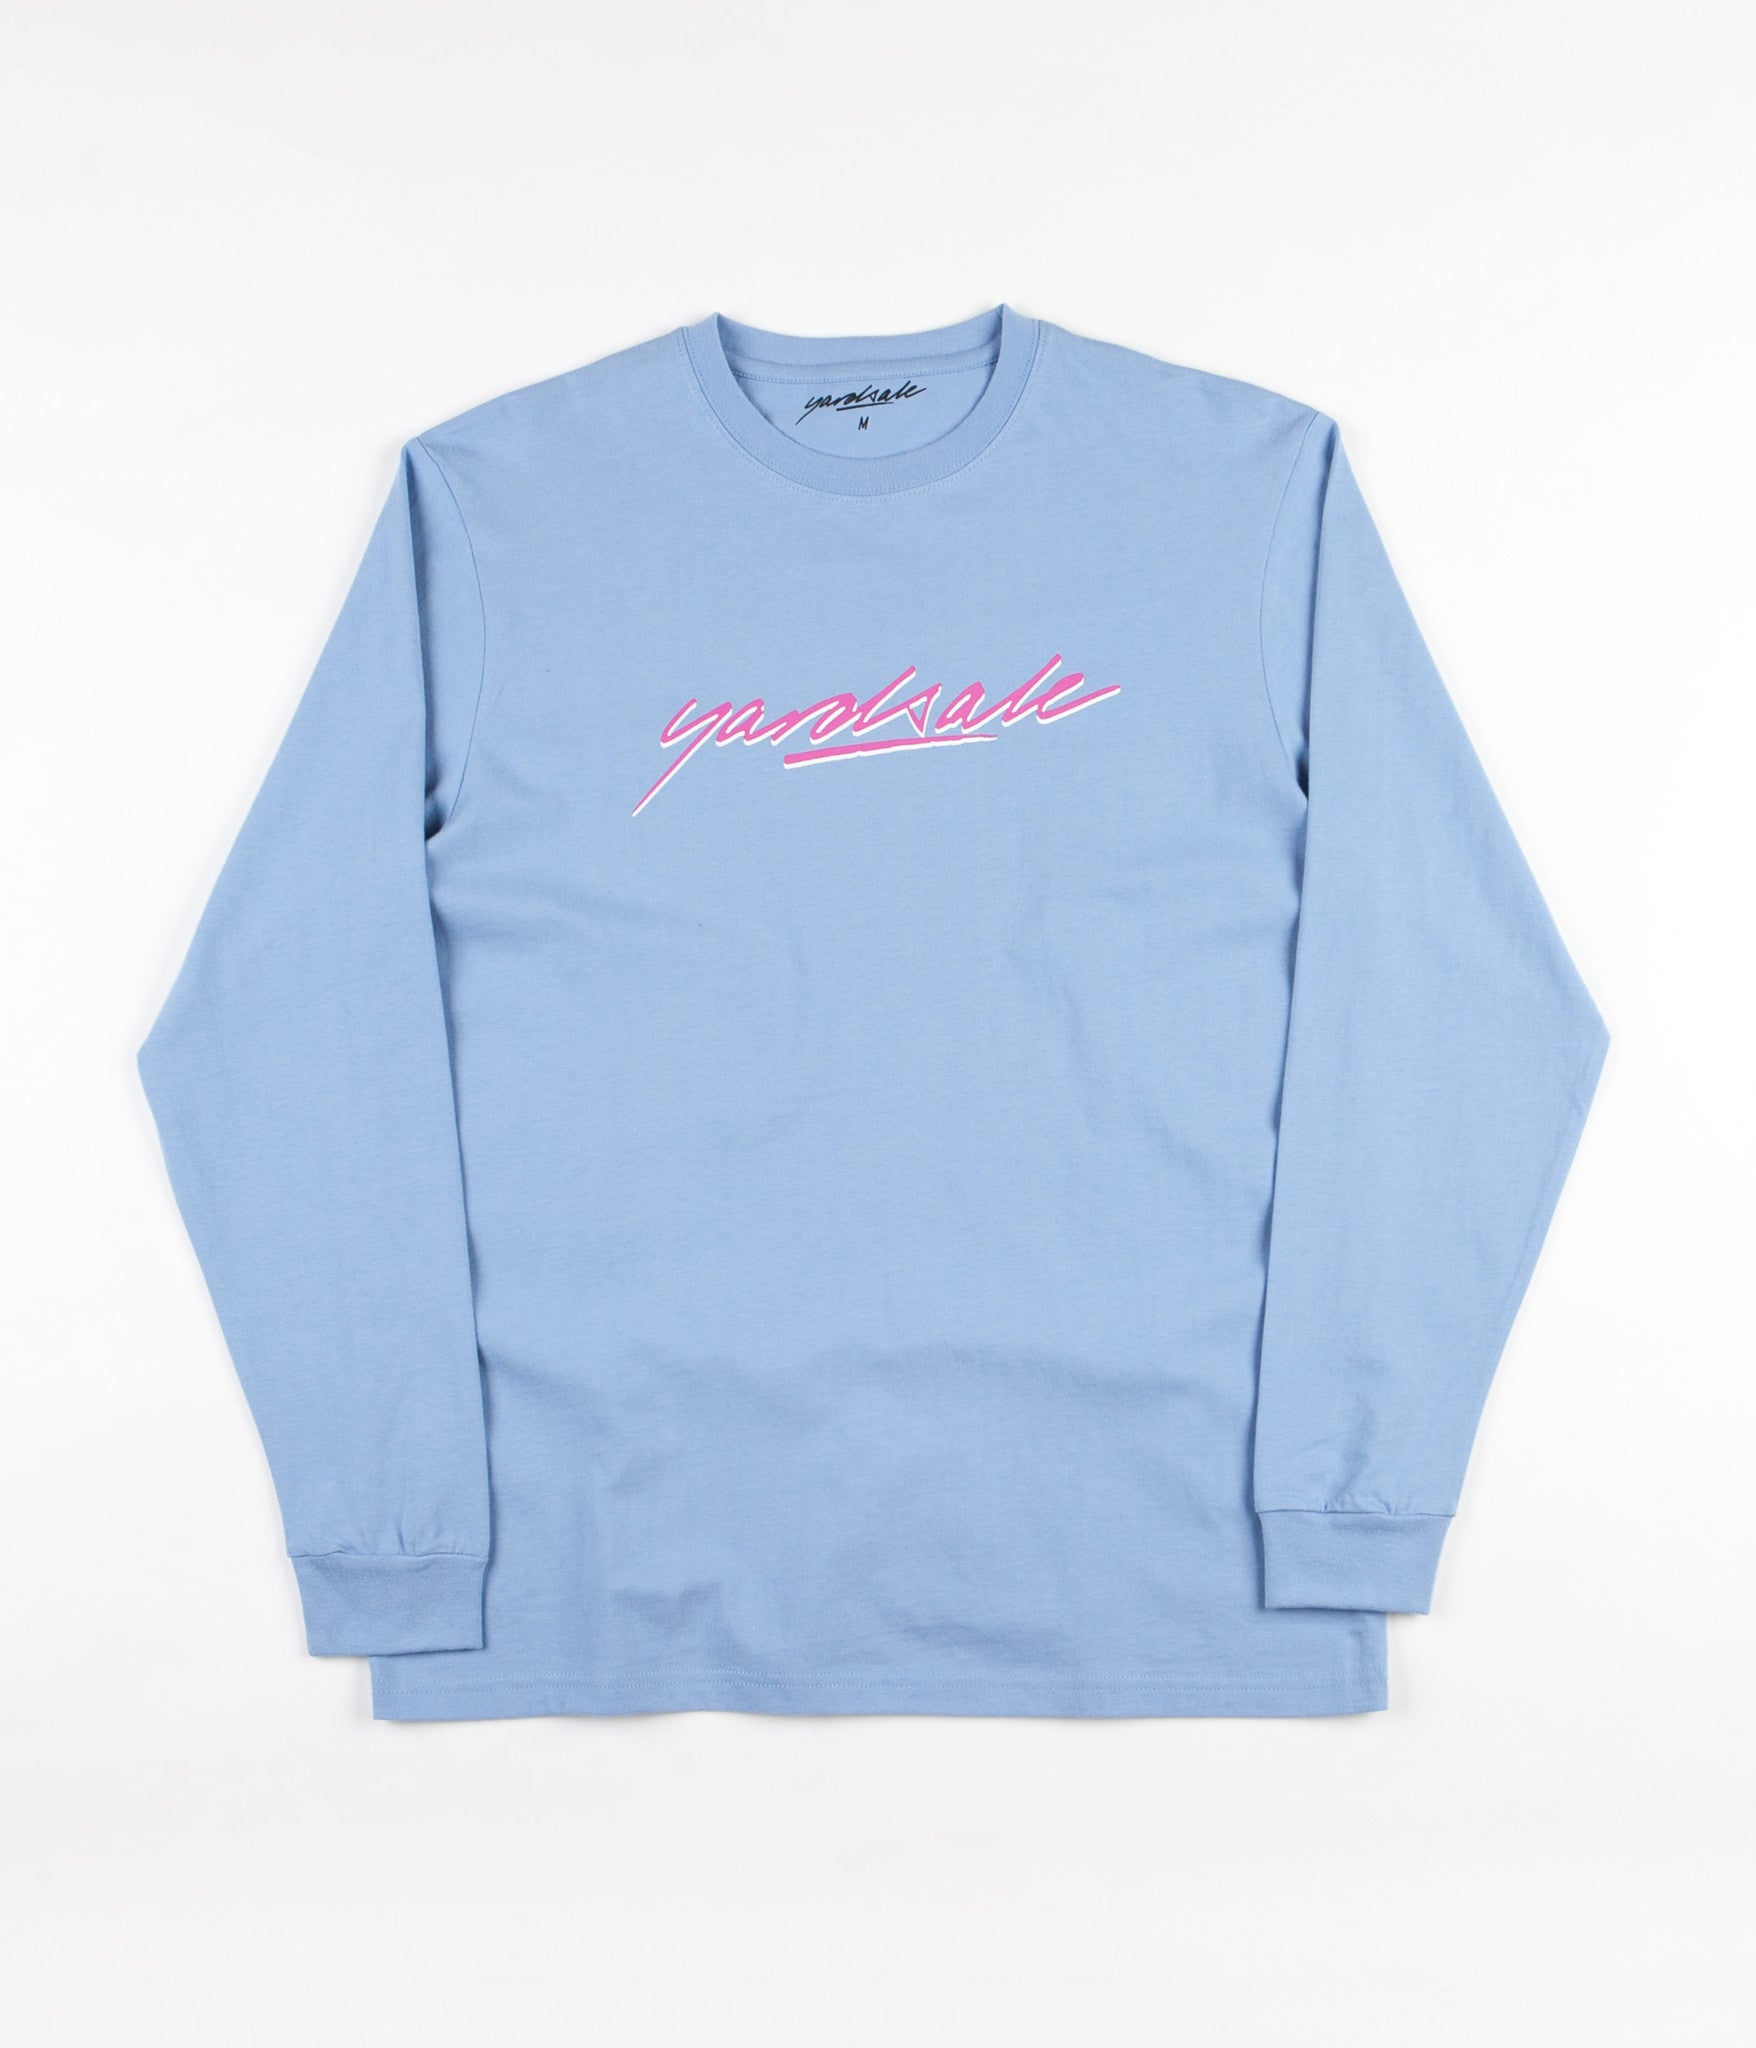 Yardsale Script Long Sleeve T-Shirt - Light Blue